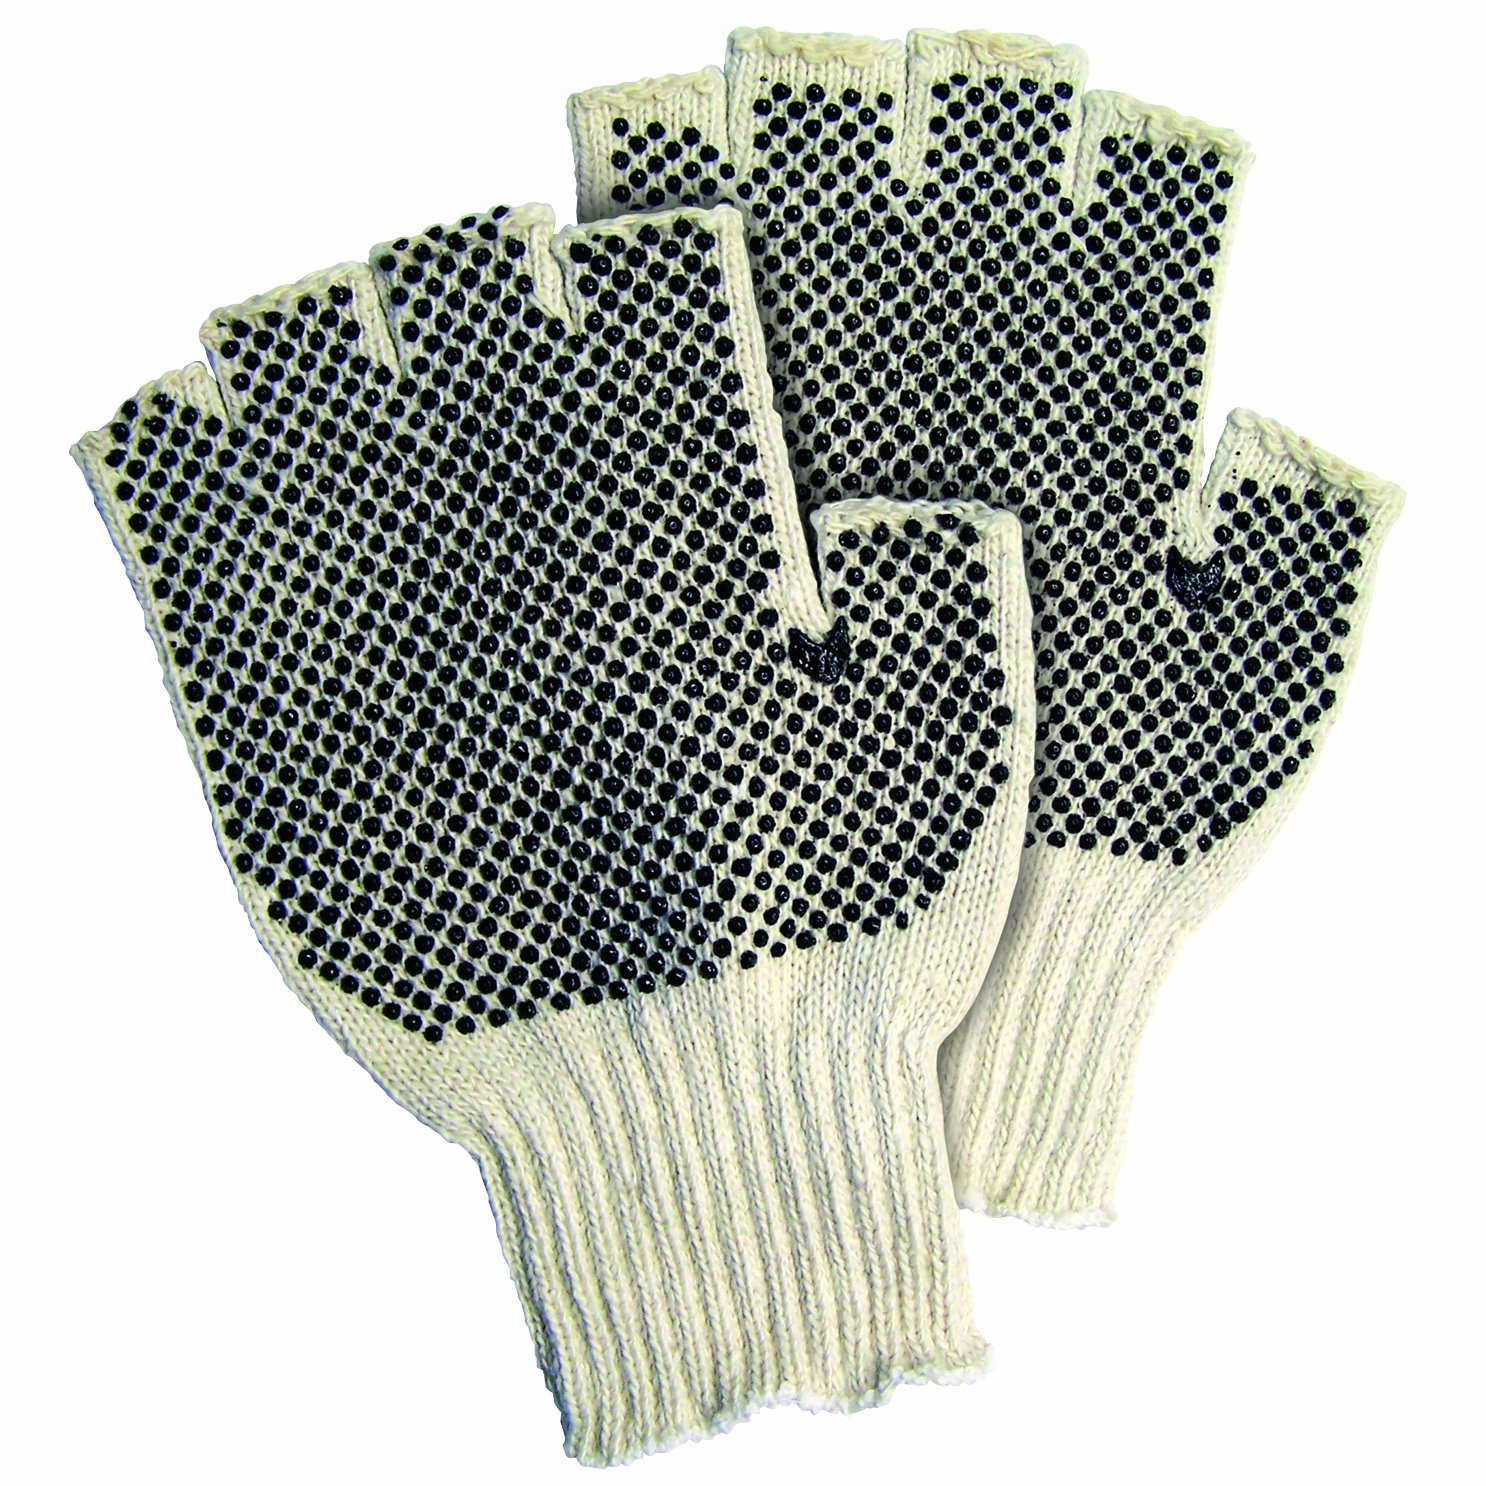 Aviditi GLV1023L Fingerless PVC Dot Knit Gloves, Large, White/Black (Case of 24) by Aviditi